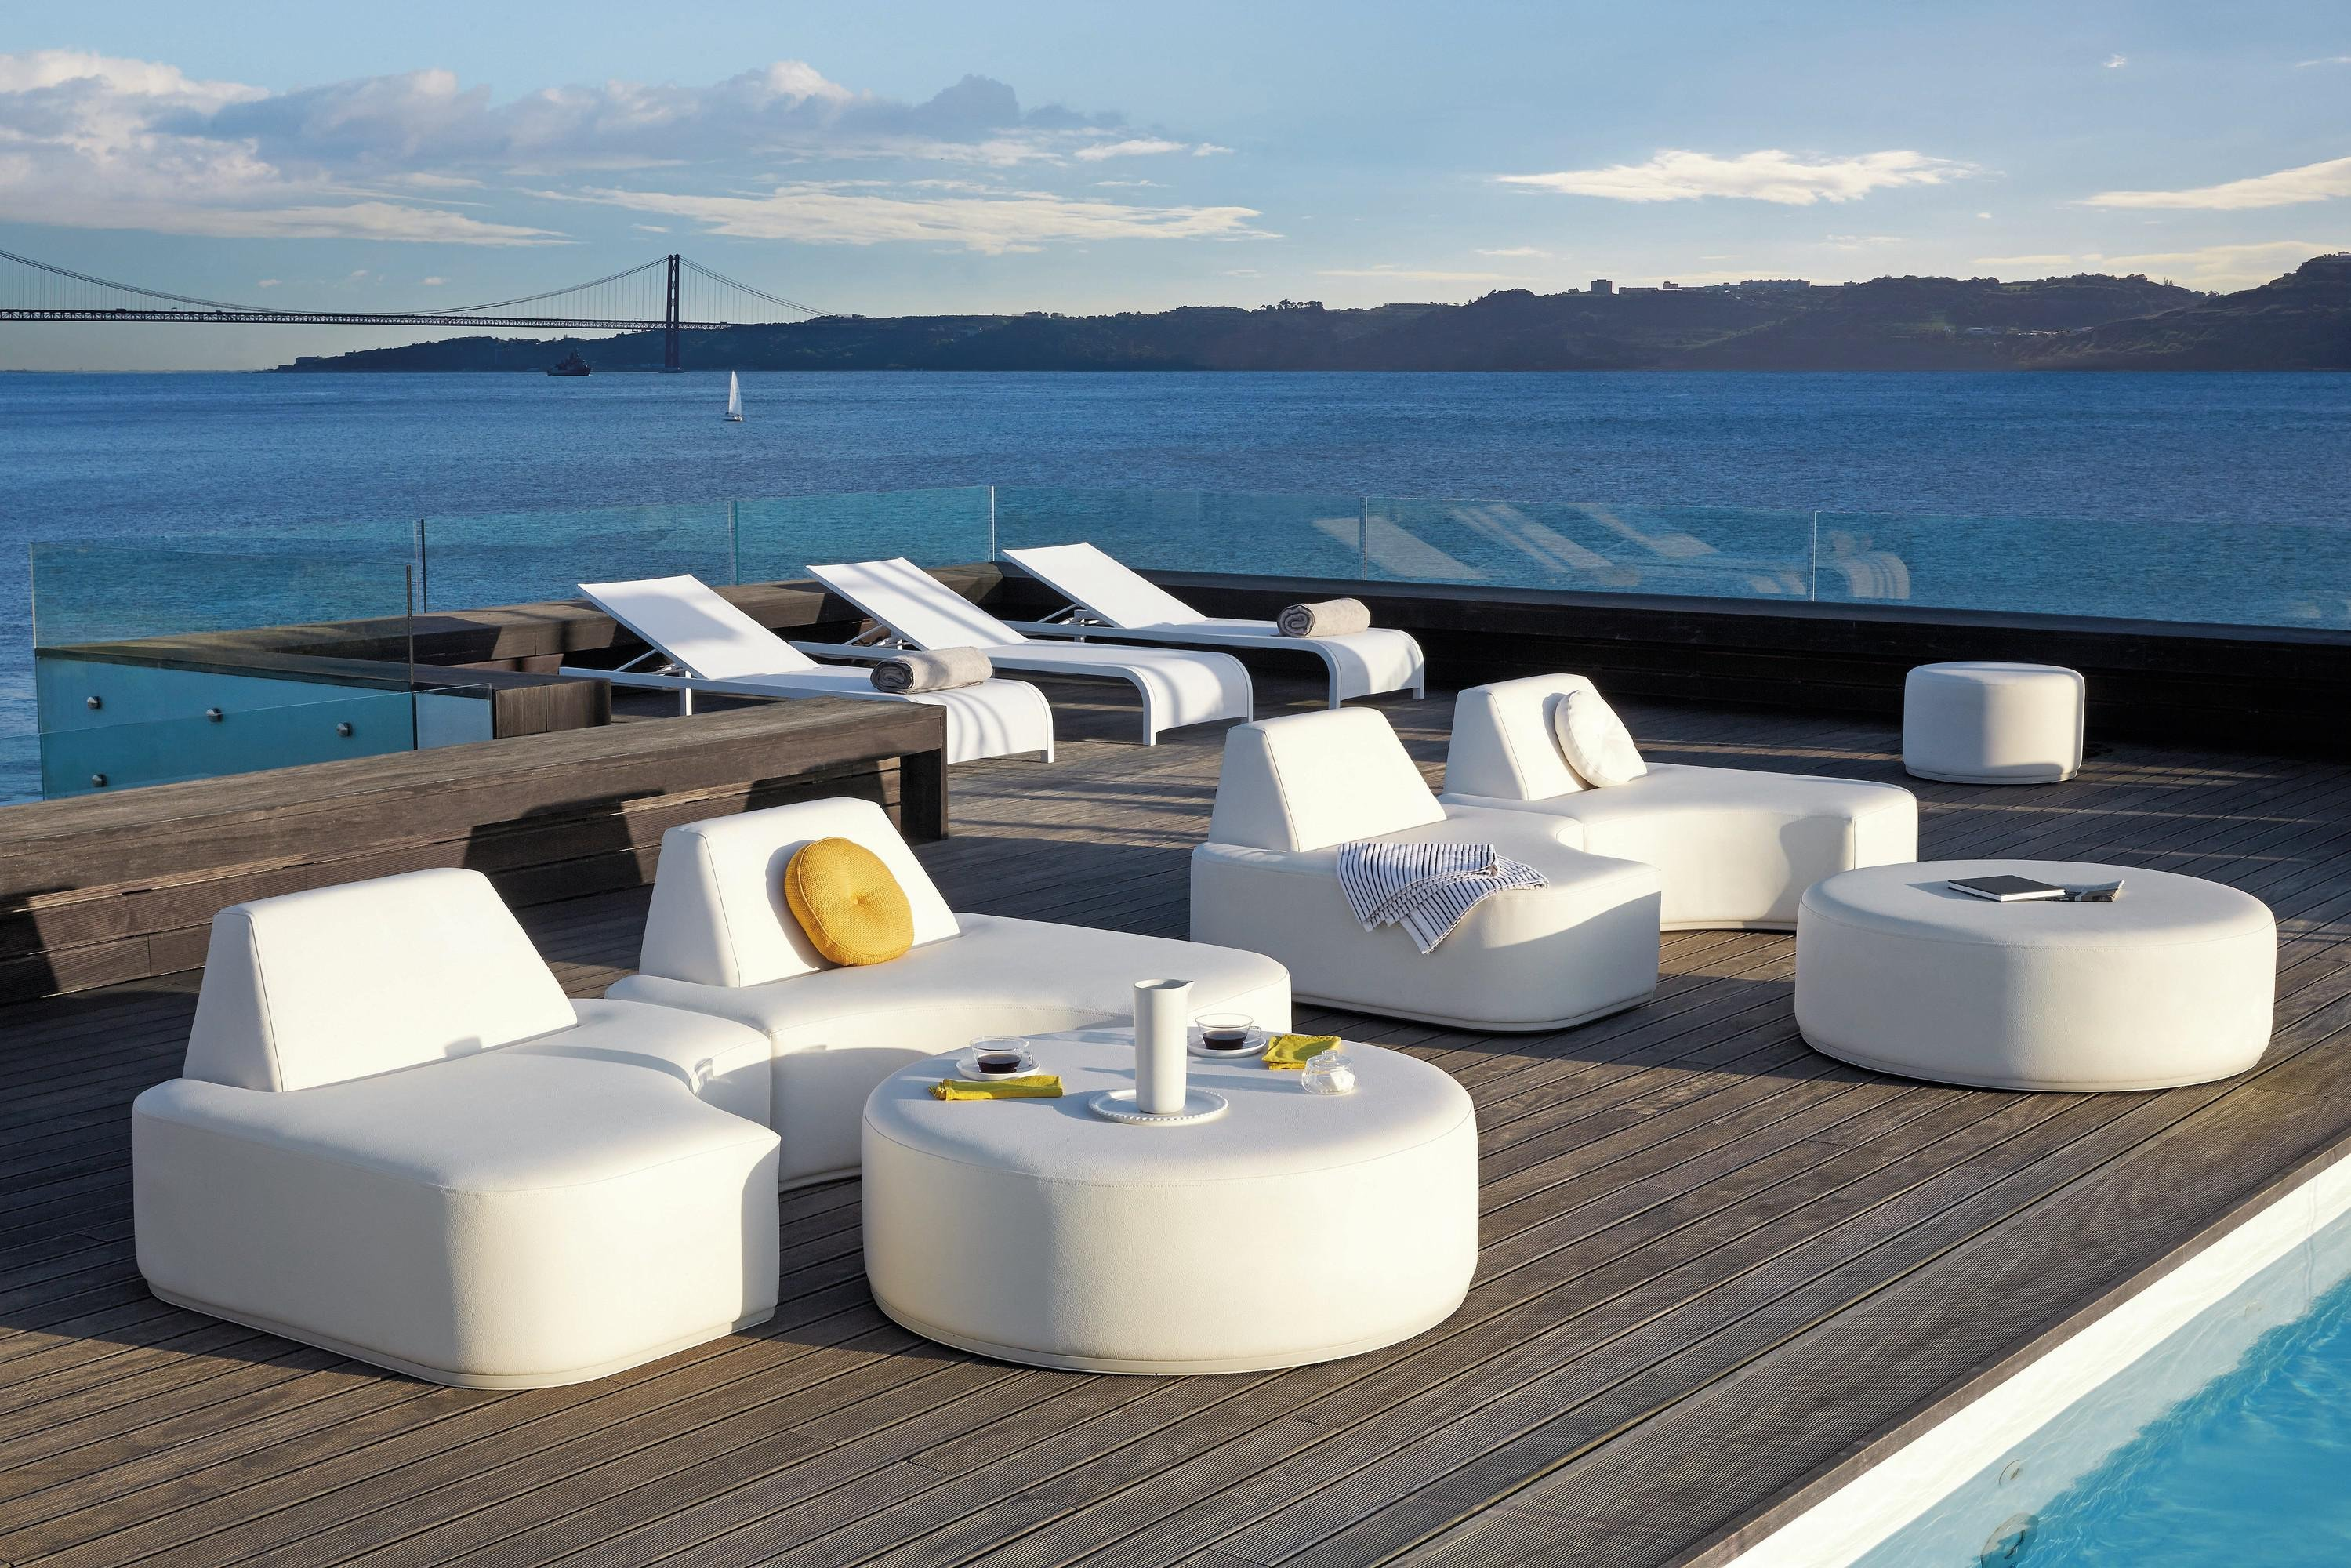 Moon Island Sofa from Manutti, designed by Gerd Couckhuyt